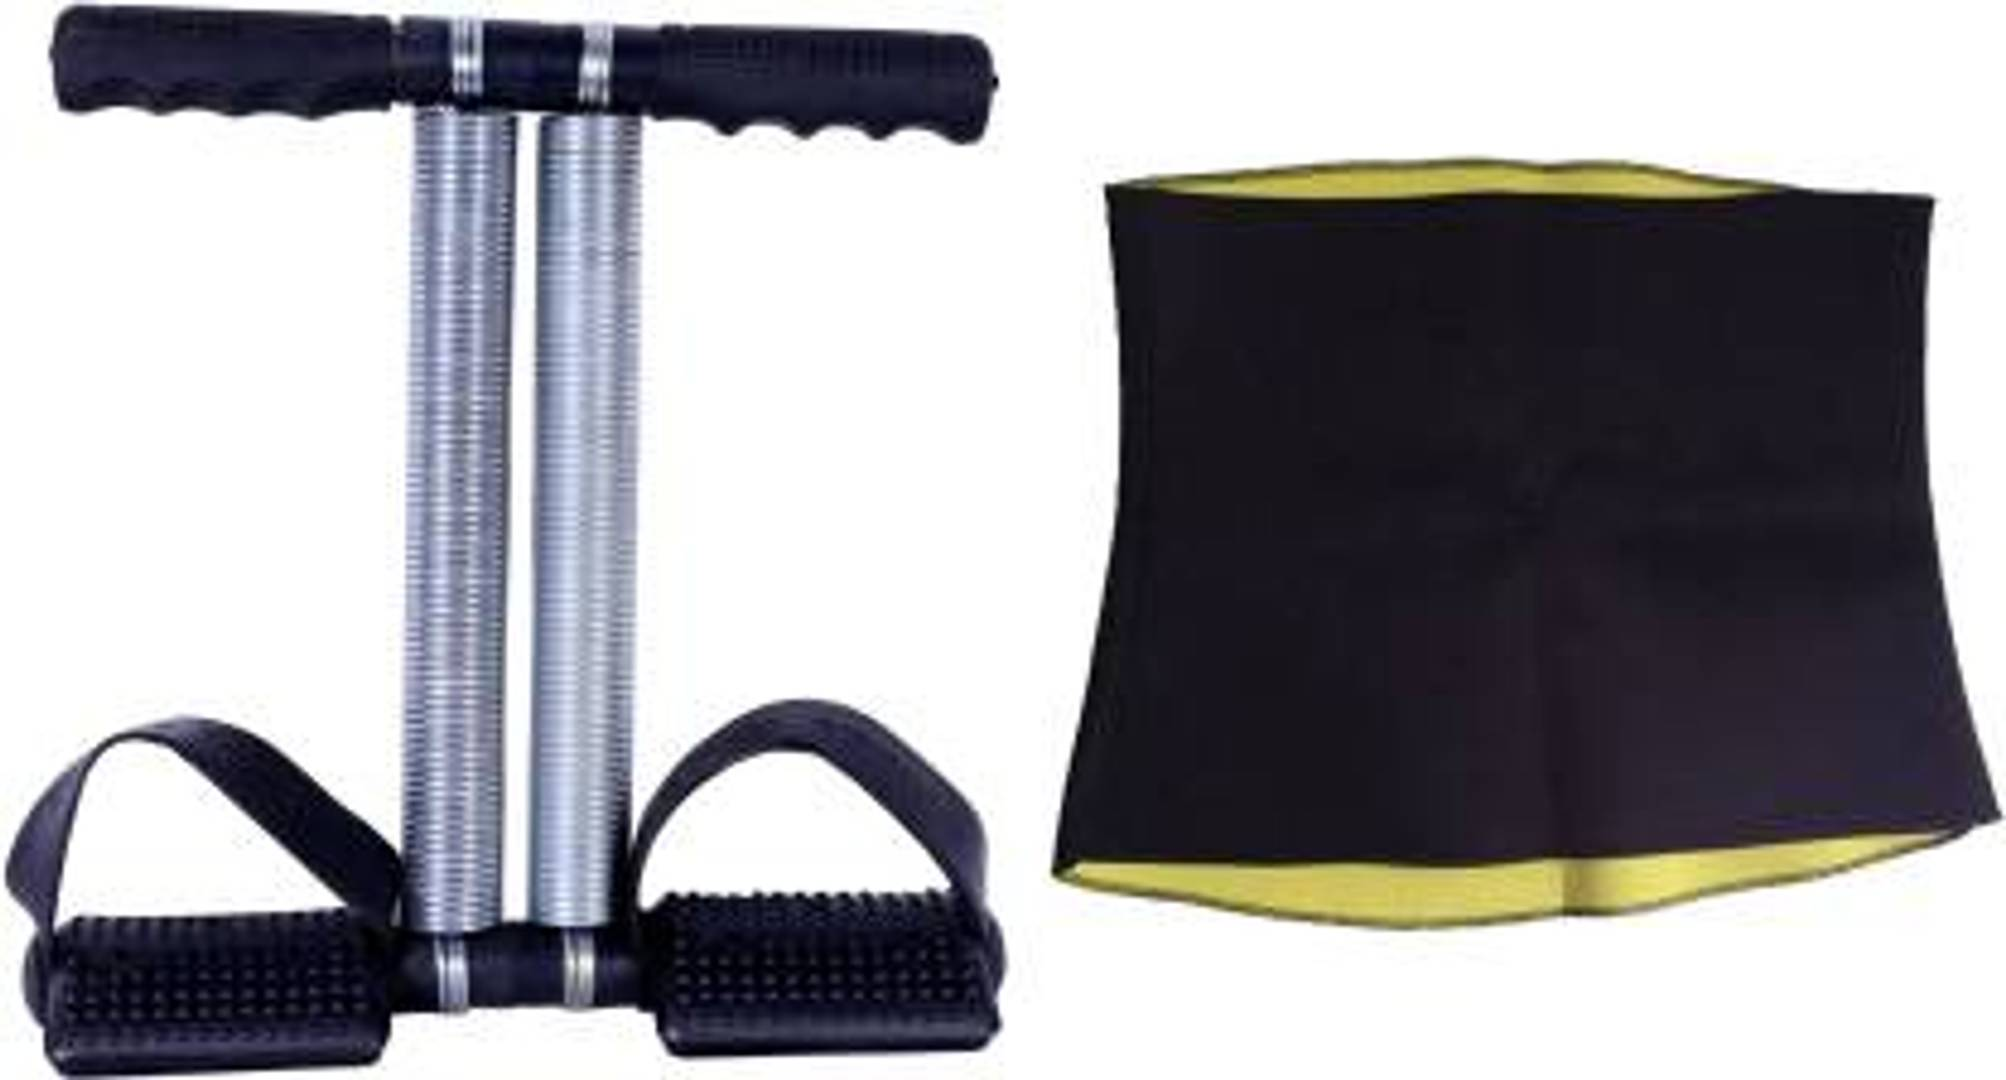 Combo of Hot Shaper Belt Tummy Trimmer ab exerciser home & gym equipment (2 Items in the set)